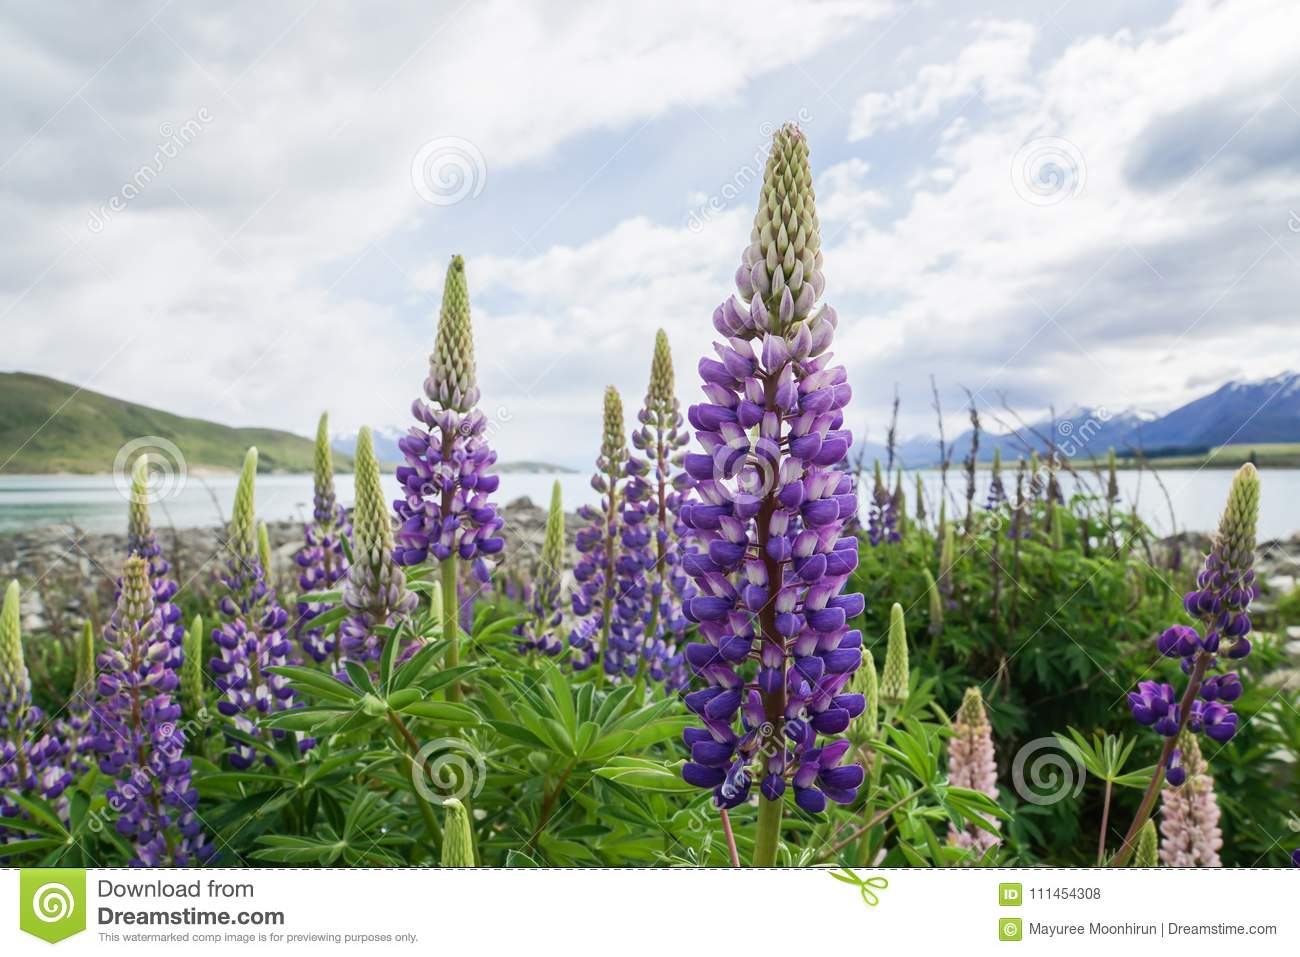 Violet Lupin Plant In Spring At Tekapo Lake In New Zealand In Cloudy